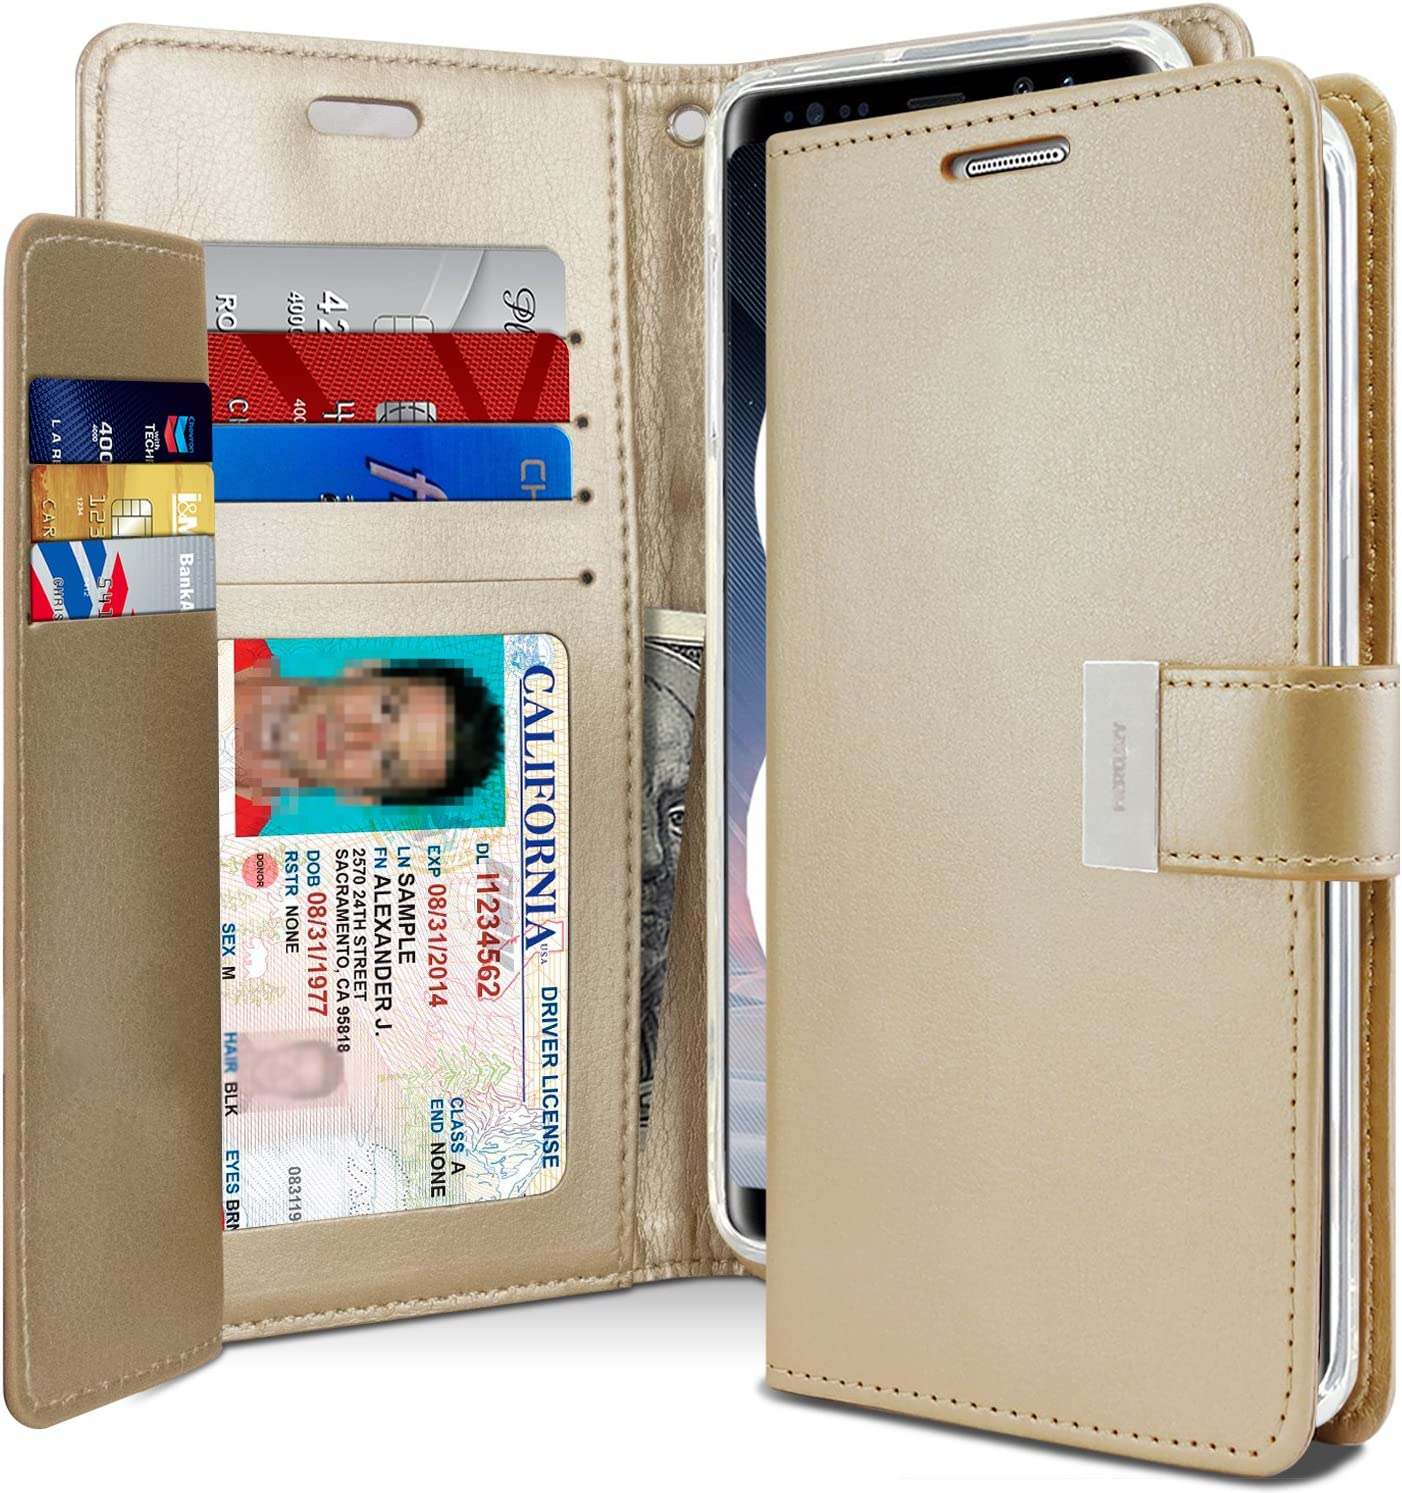 Goospery Rich Wallet for Samsung Galaxy Note 8 Case (2017) Extra Card Slots Leather Flip Cover (Gold) NT8-RIC-GLD